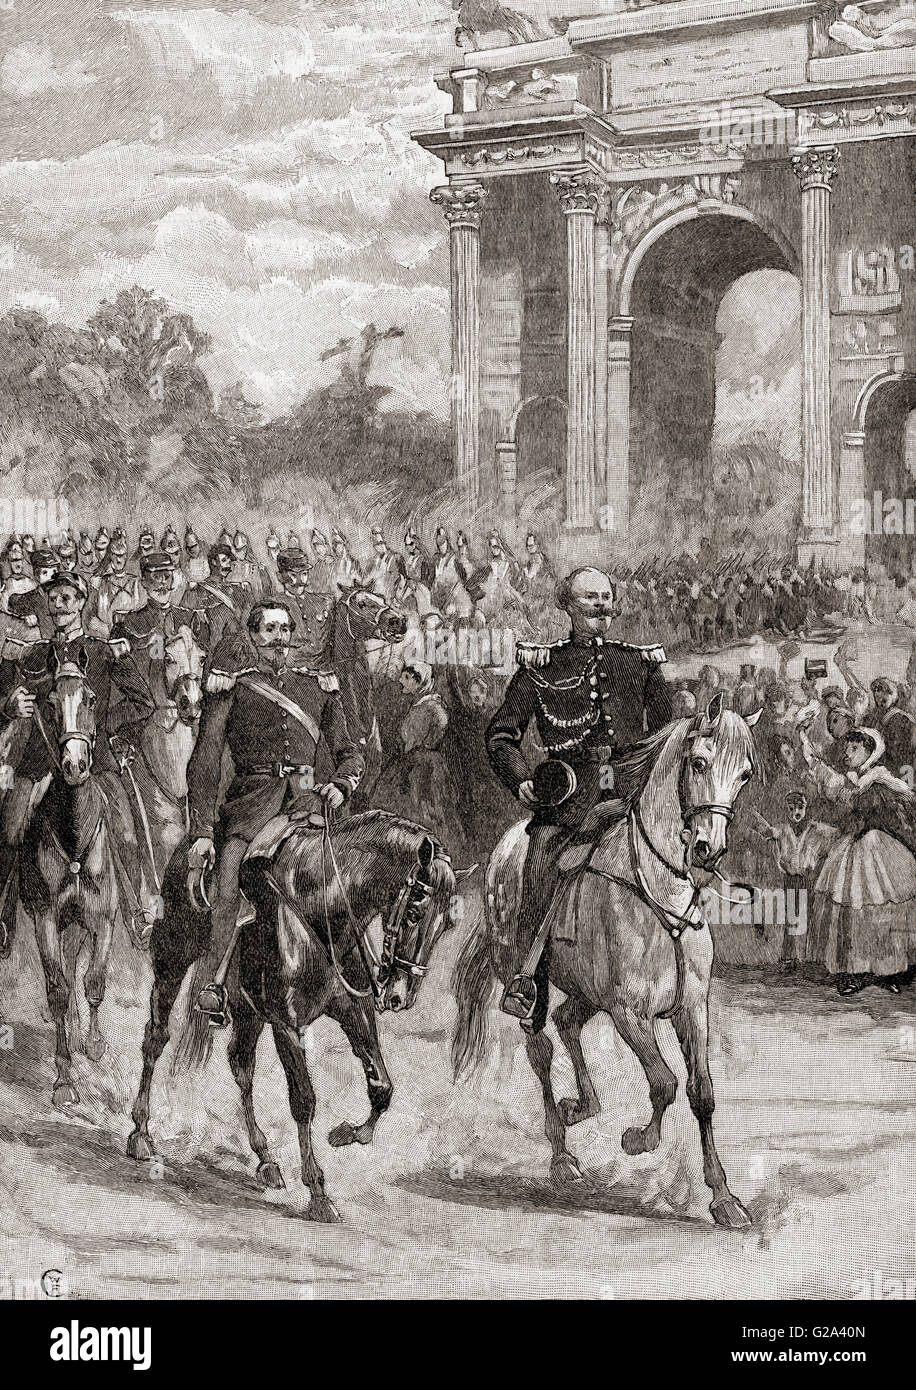 The entry of Napoleon III, right, 1808-1873 and Victor Emmanuel II, left, 1820-1878, into Milan, Italy, 8th June - Stock Image